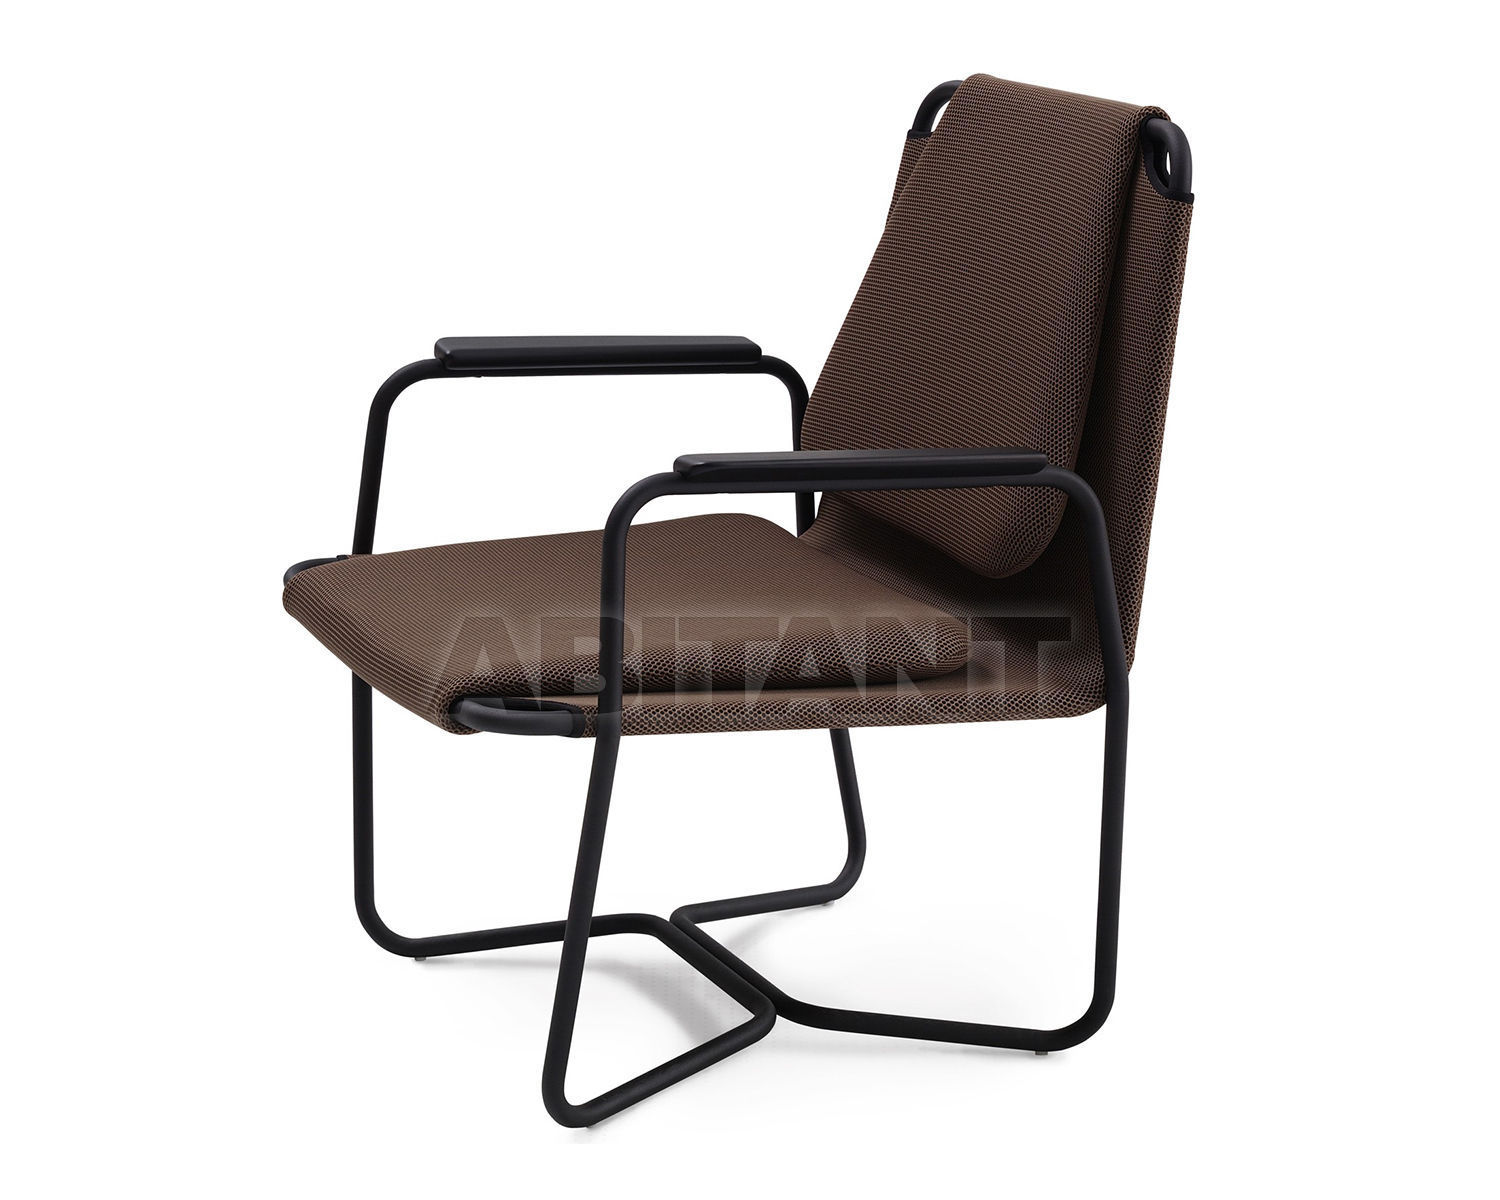 Купить Кресло Casta Sancal Diseno, S.L. Sofa 287.621.G Brown